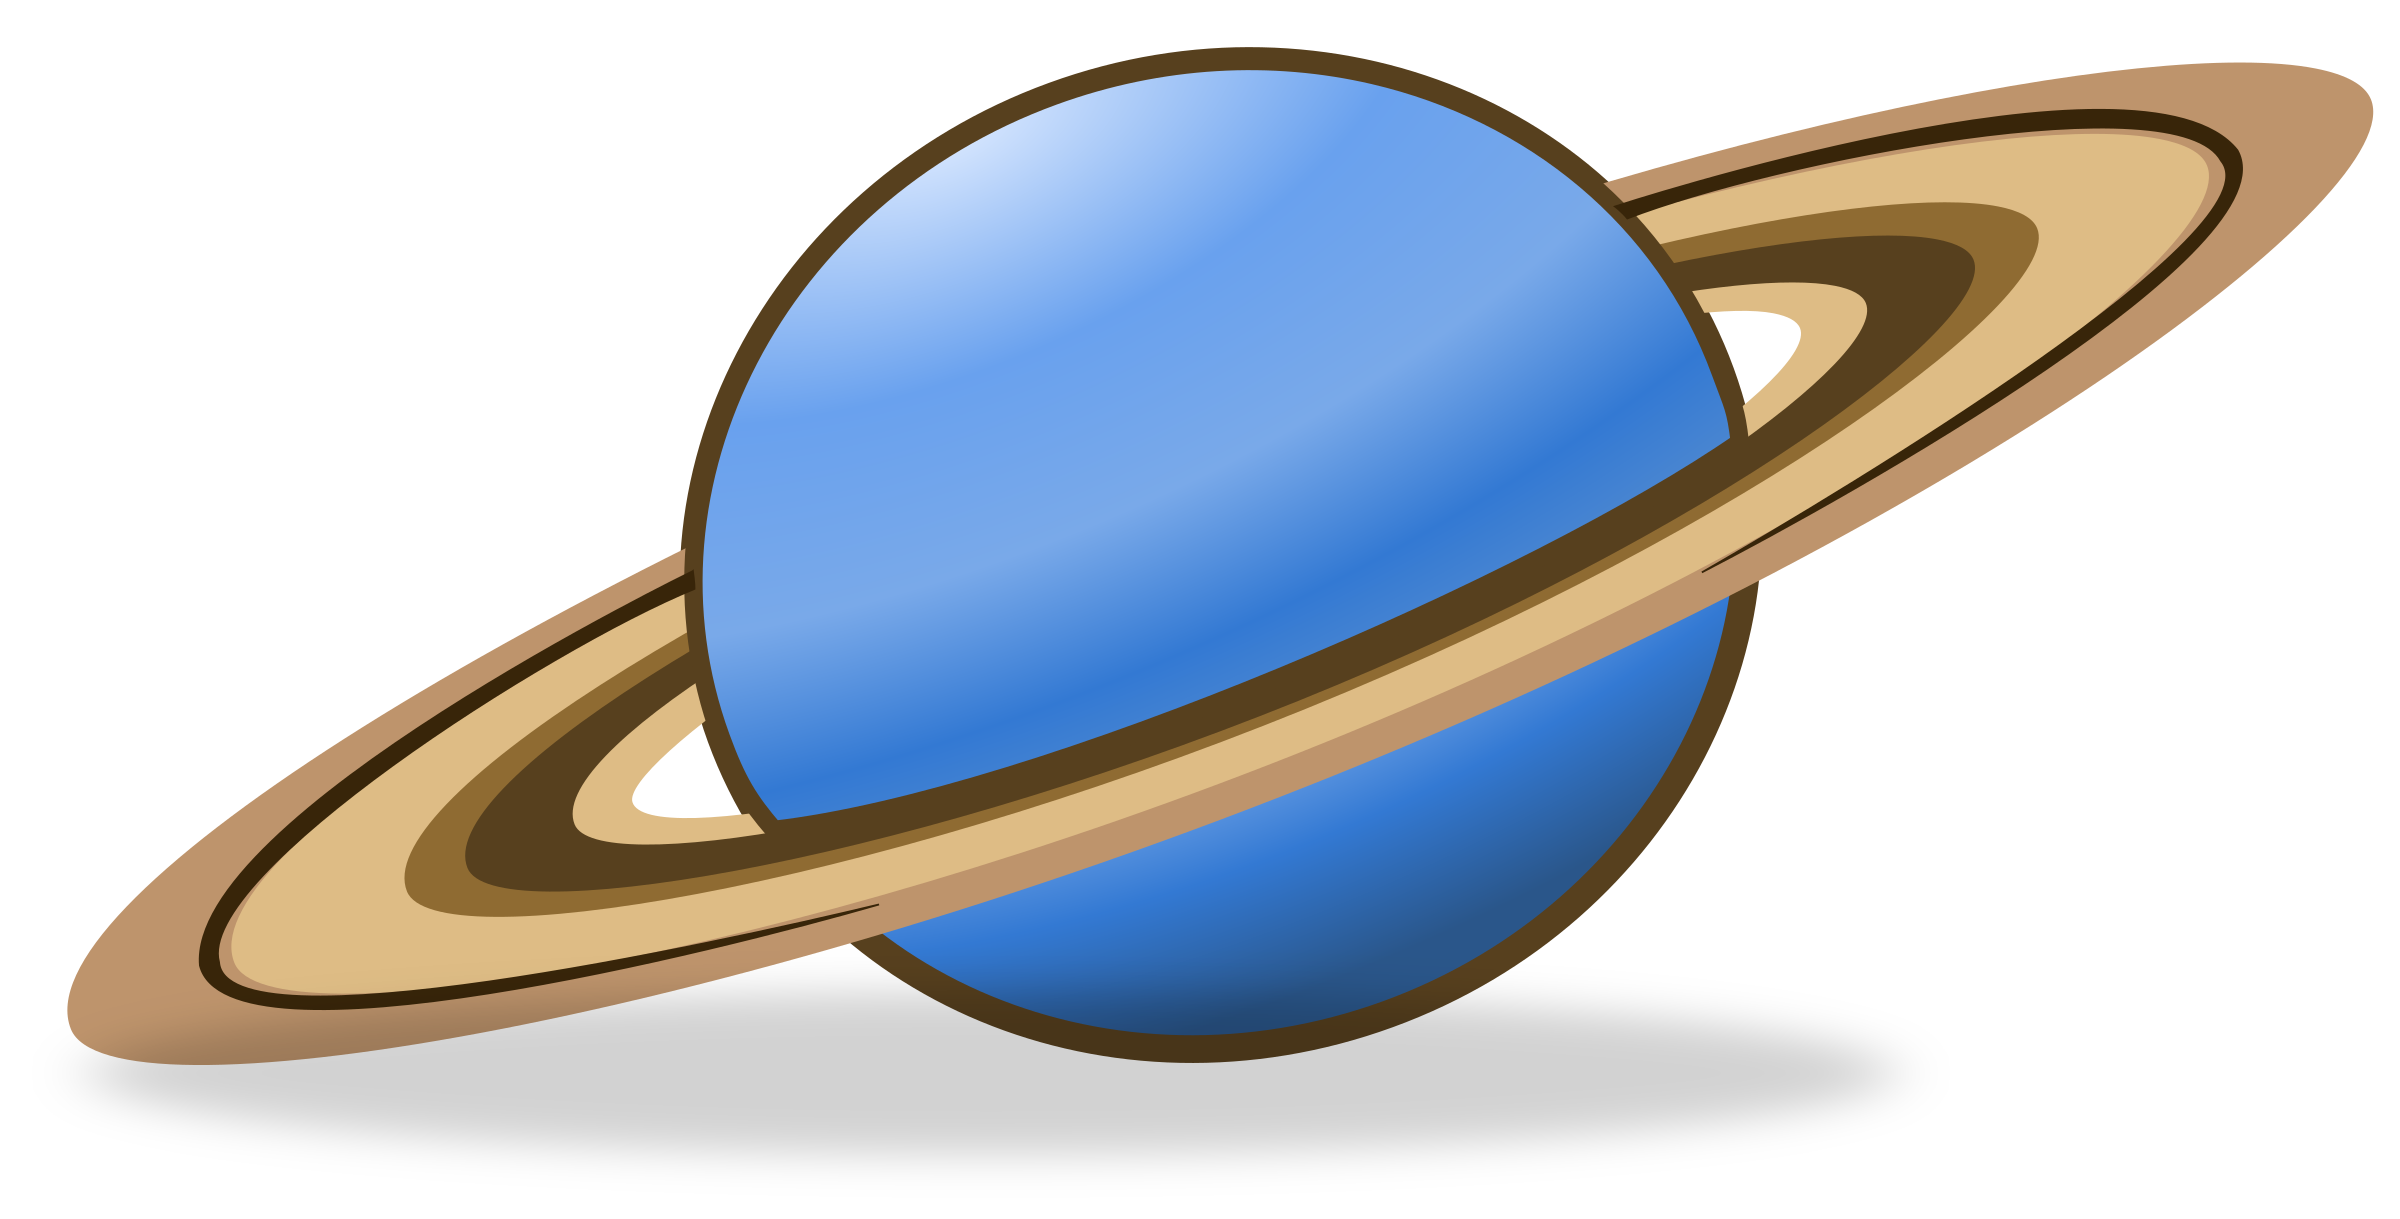 royalty free download Saturn clipart. Projects idea of icon